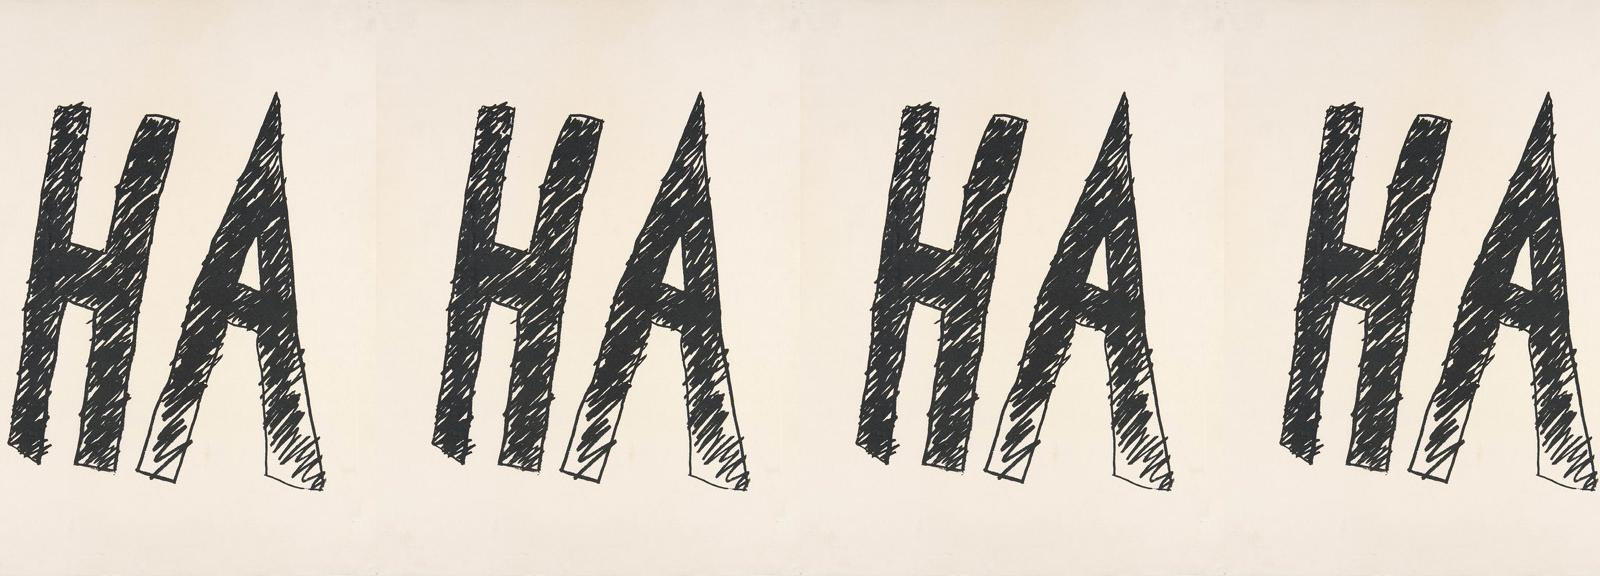 Aleks Danko, Poster for 'HA' 2006, screenprint on litho paper, ,, Museum of Contemporary Art, Gift of Julie Ewington, © the artist